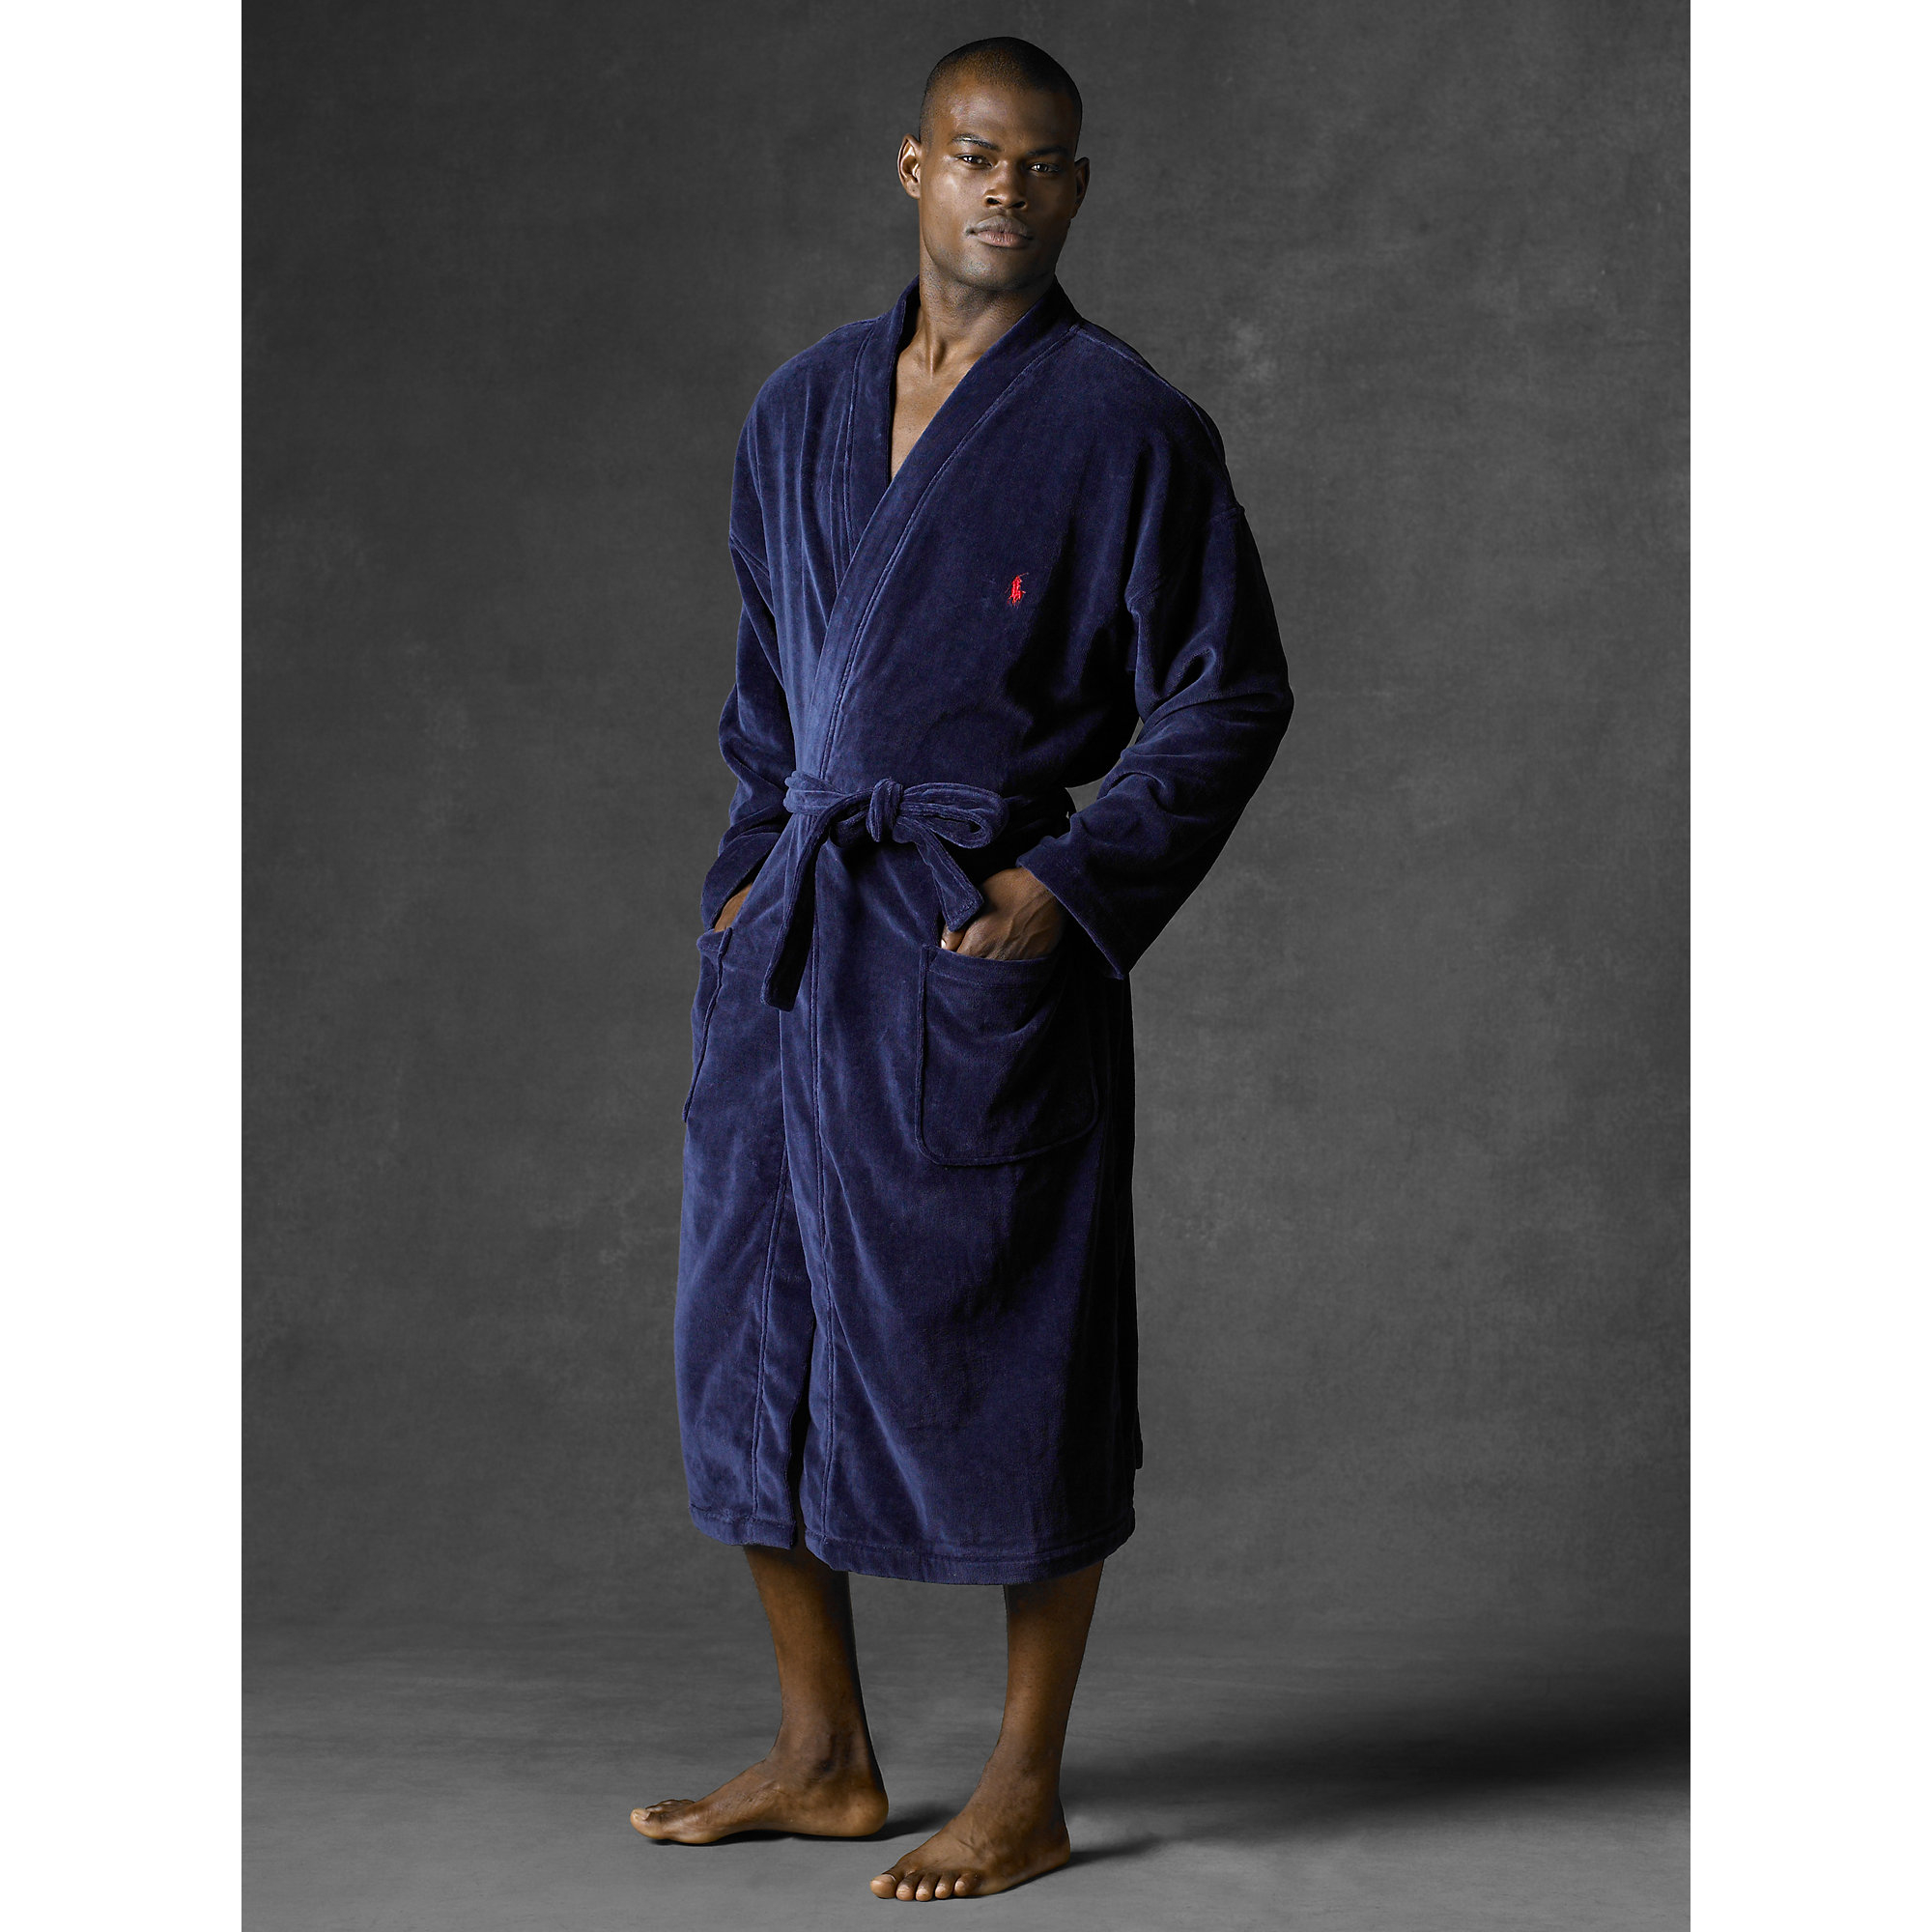 polo ralph lauren terry kimono robe in blue for men lyst. Black Bedroom Furniture Sets. Home Design Ideas